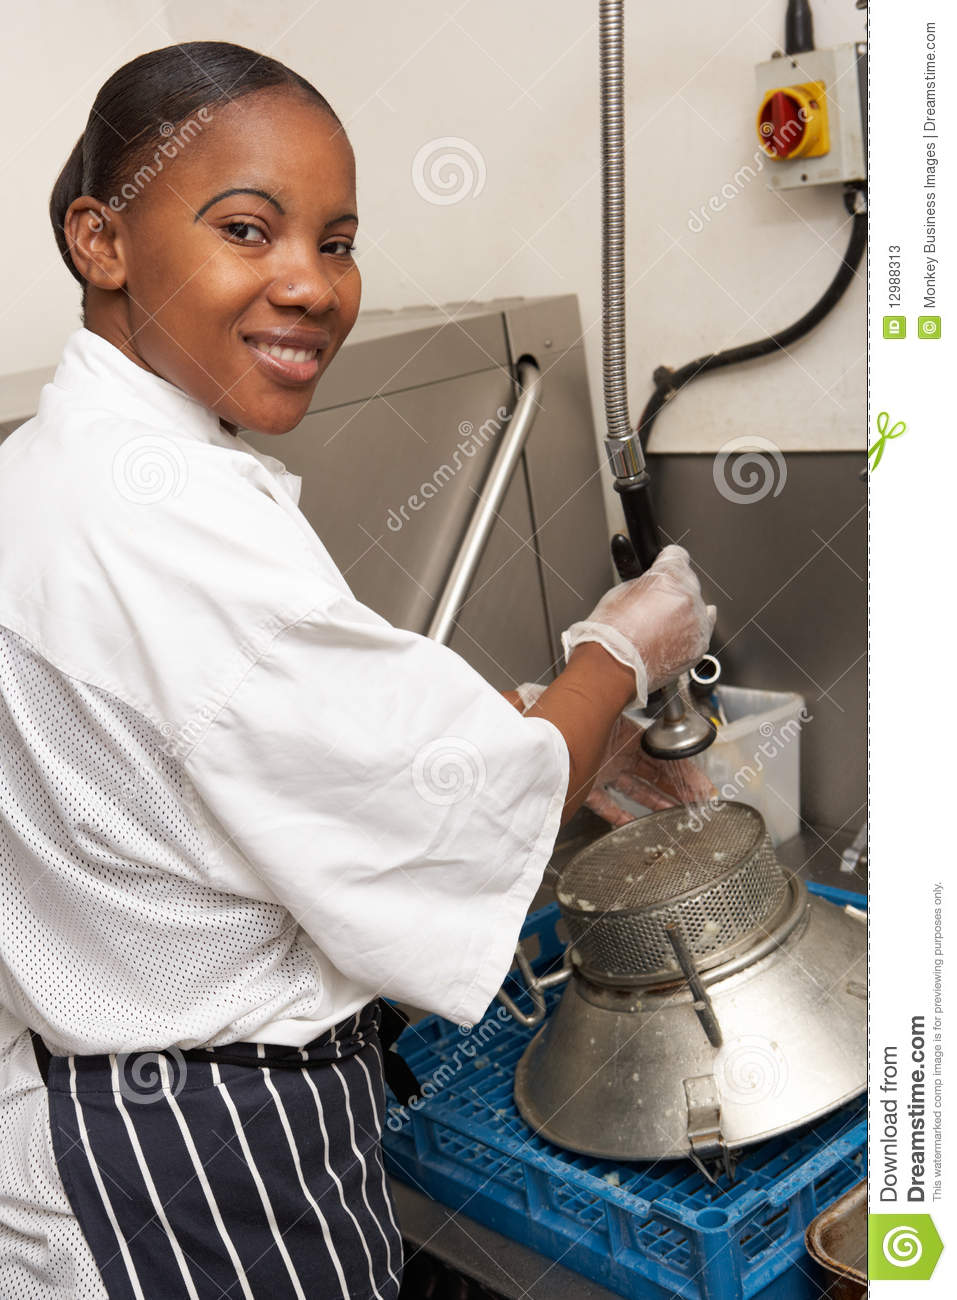 Kitchen Worker Washing Up In Restaurant Kitchen Stock